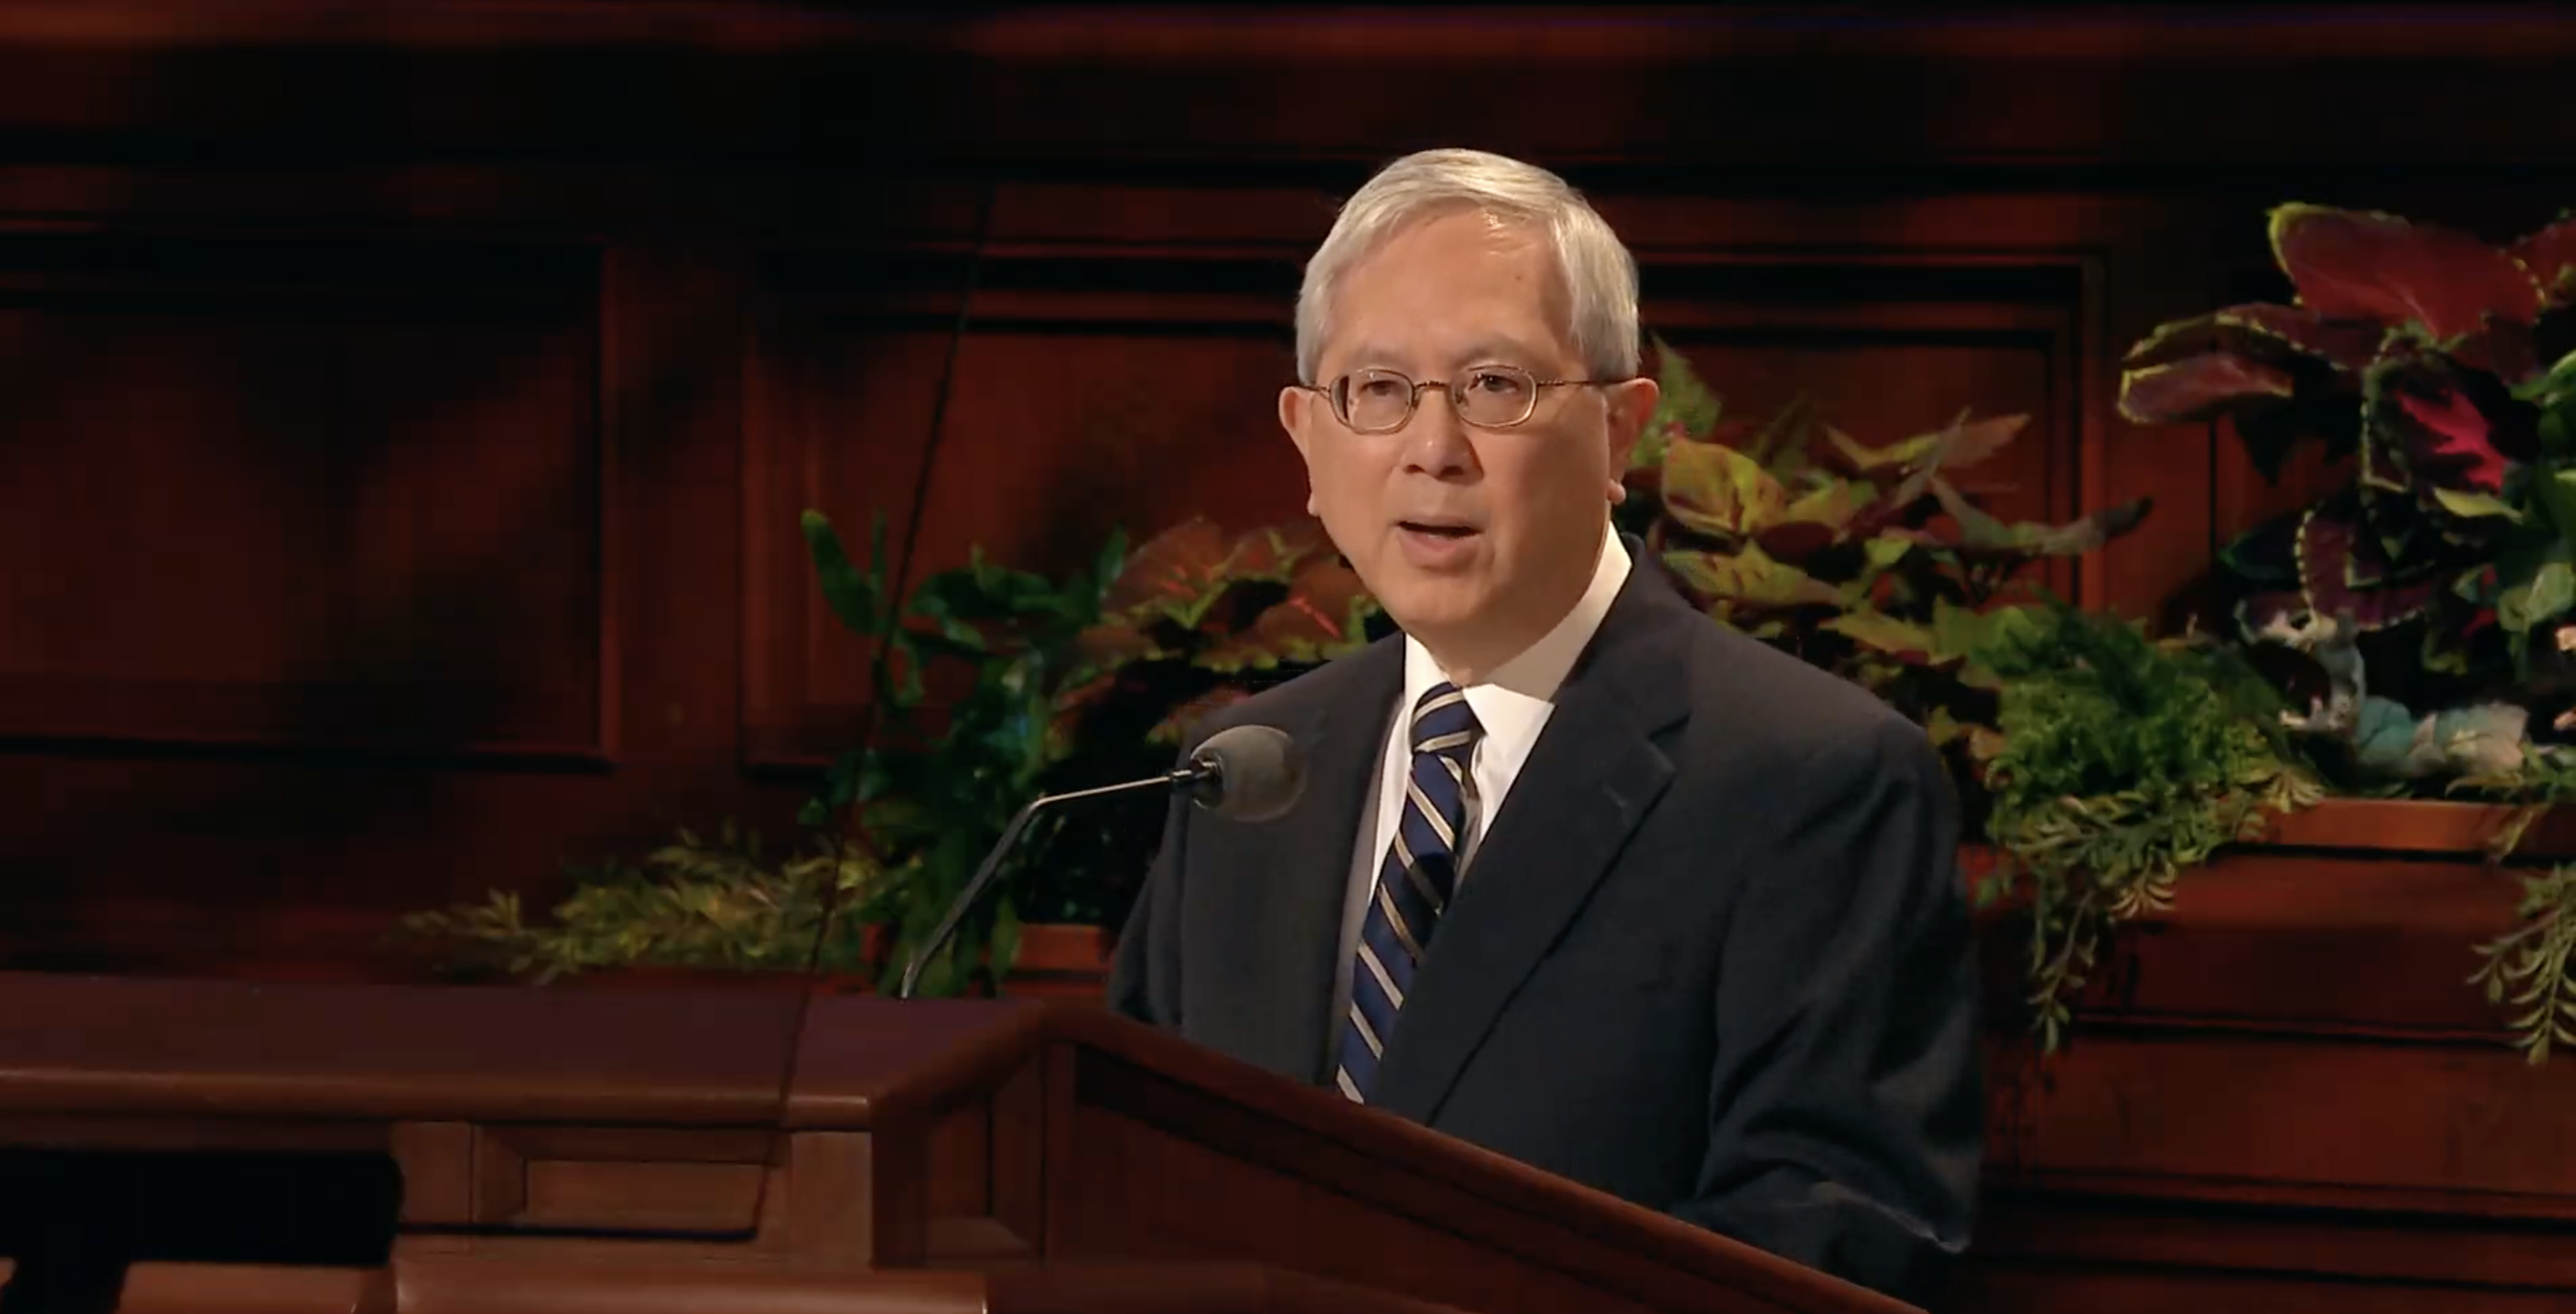 Elder Gerrit W. Gong of the Quorum of the Twelve Apostles speaks during the Sunday morning session in the 189th Semiannual General Conference of the Church on Oct. 6, 2019.